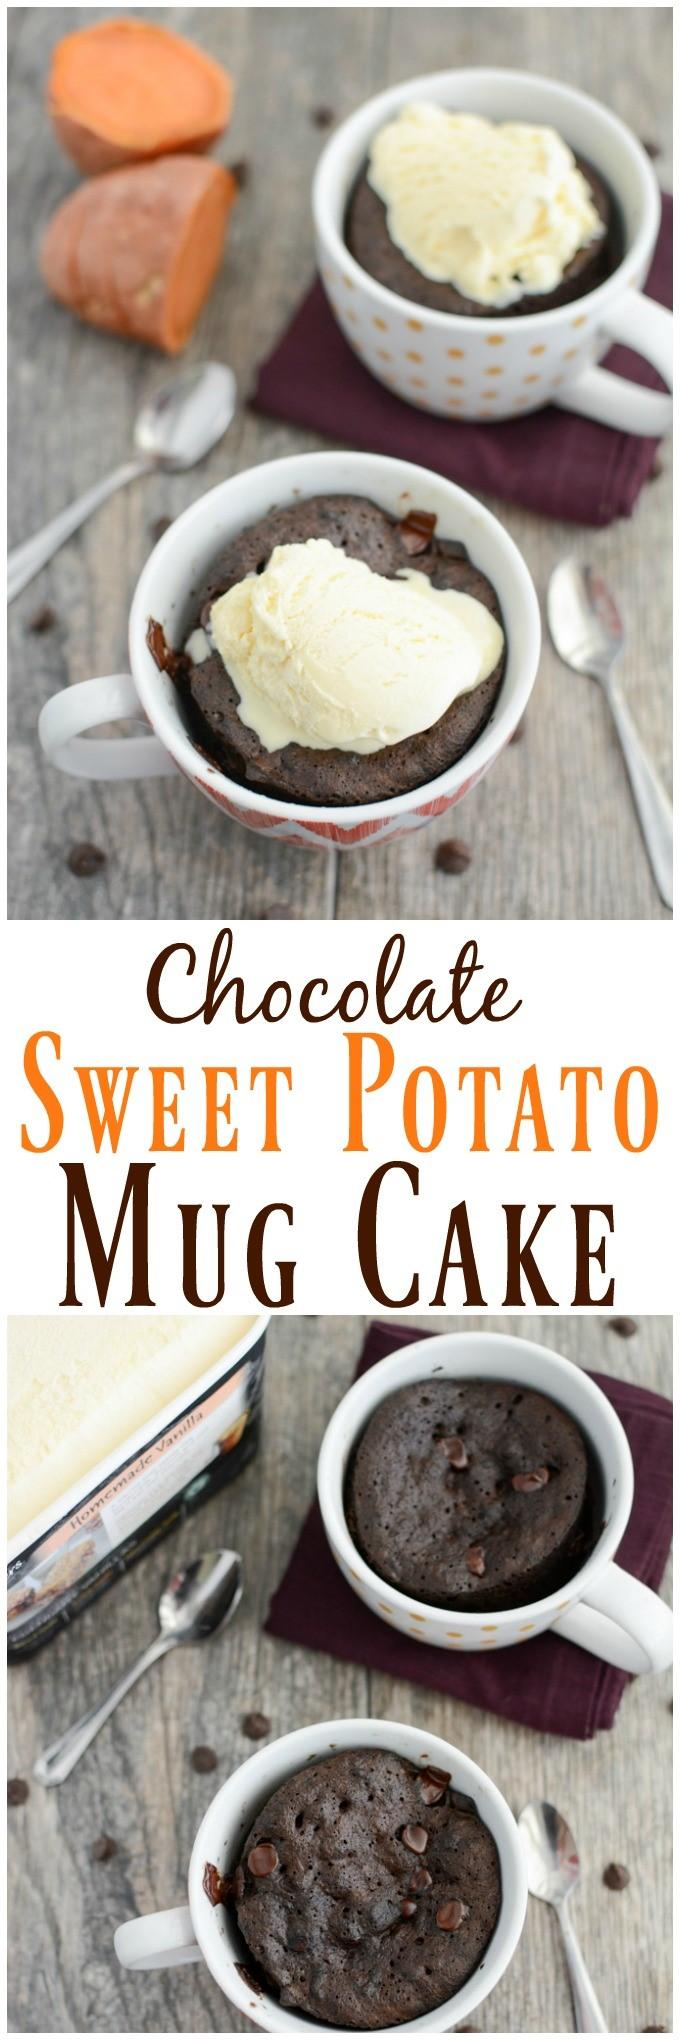 This Chocolate Sweet Potato Mug Cake recipe is a quick and easy way to satisfy your dessert craving!